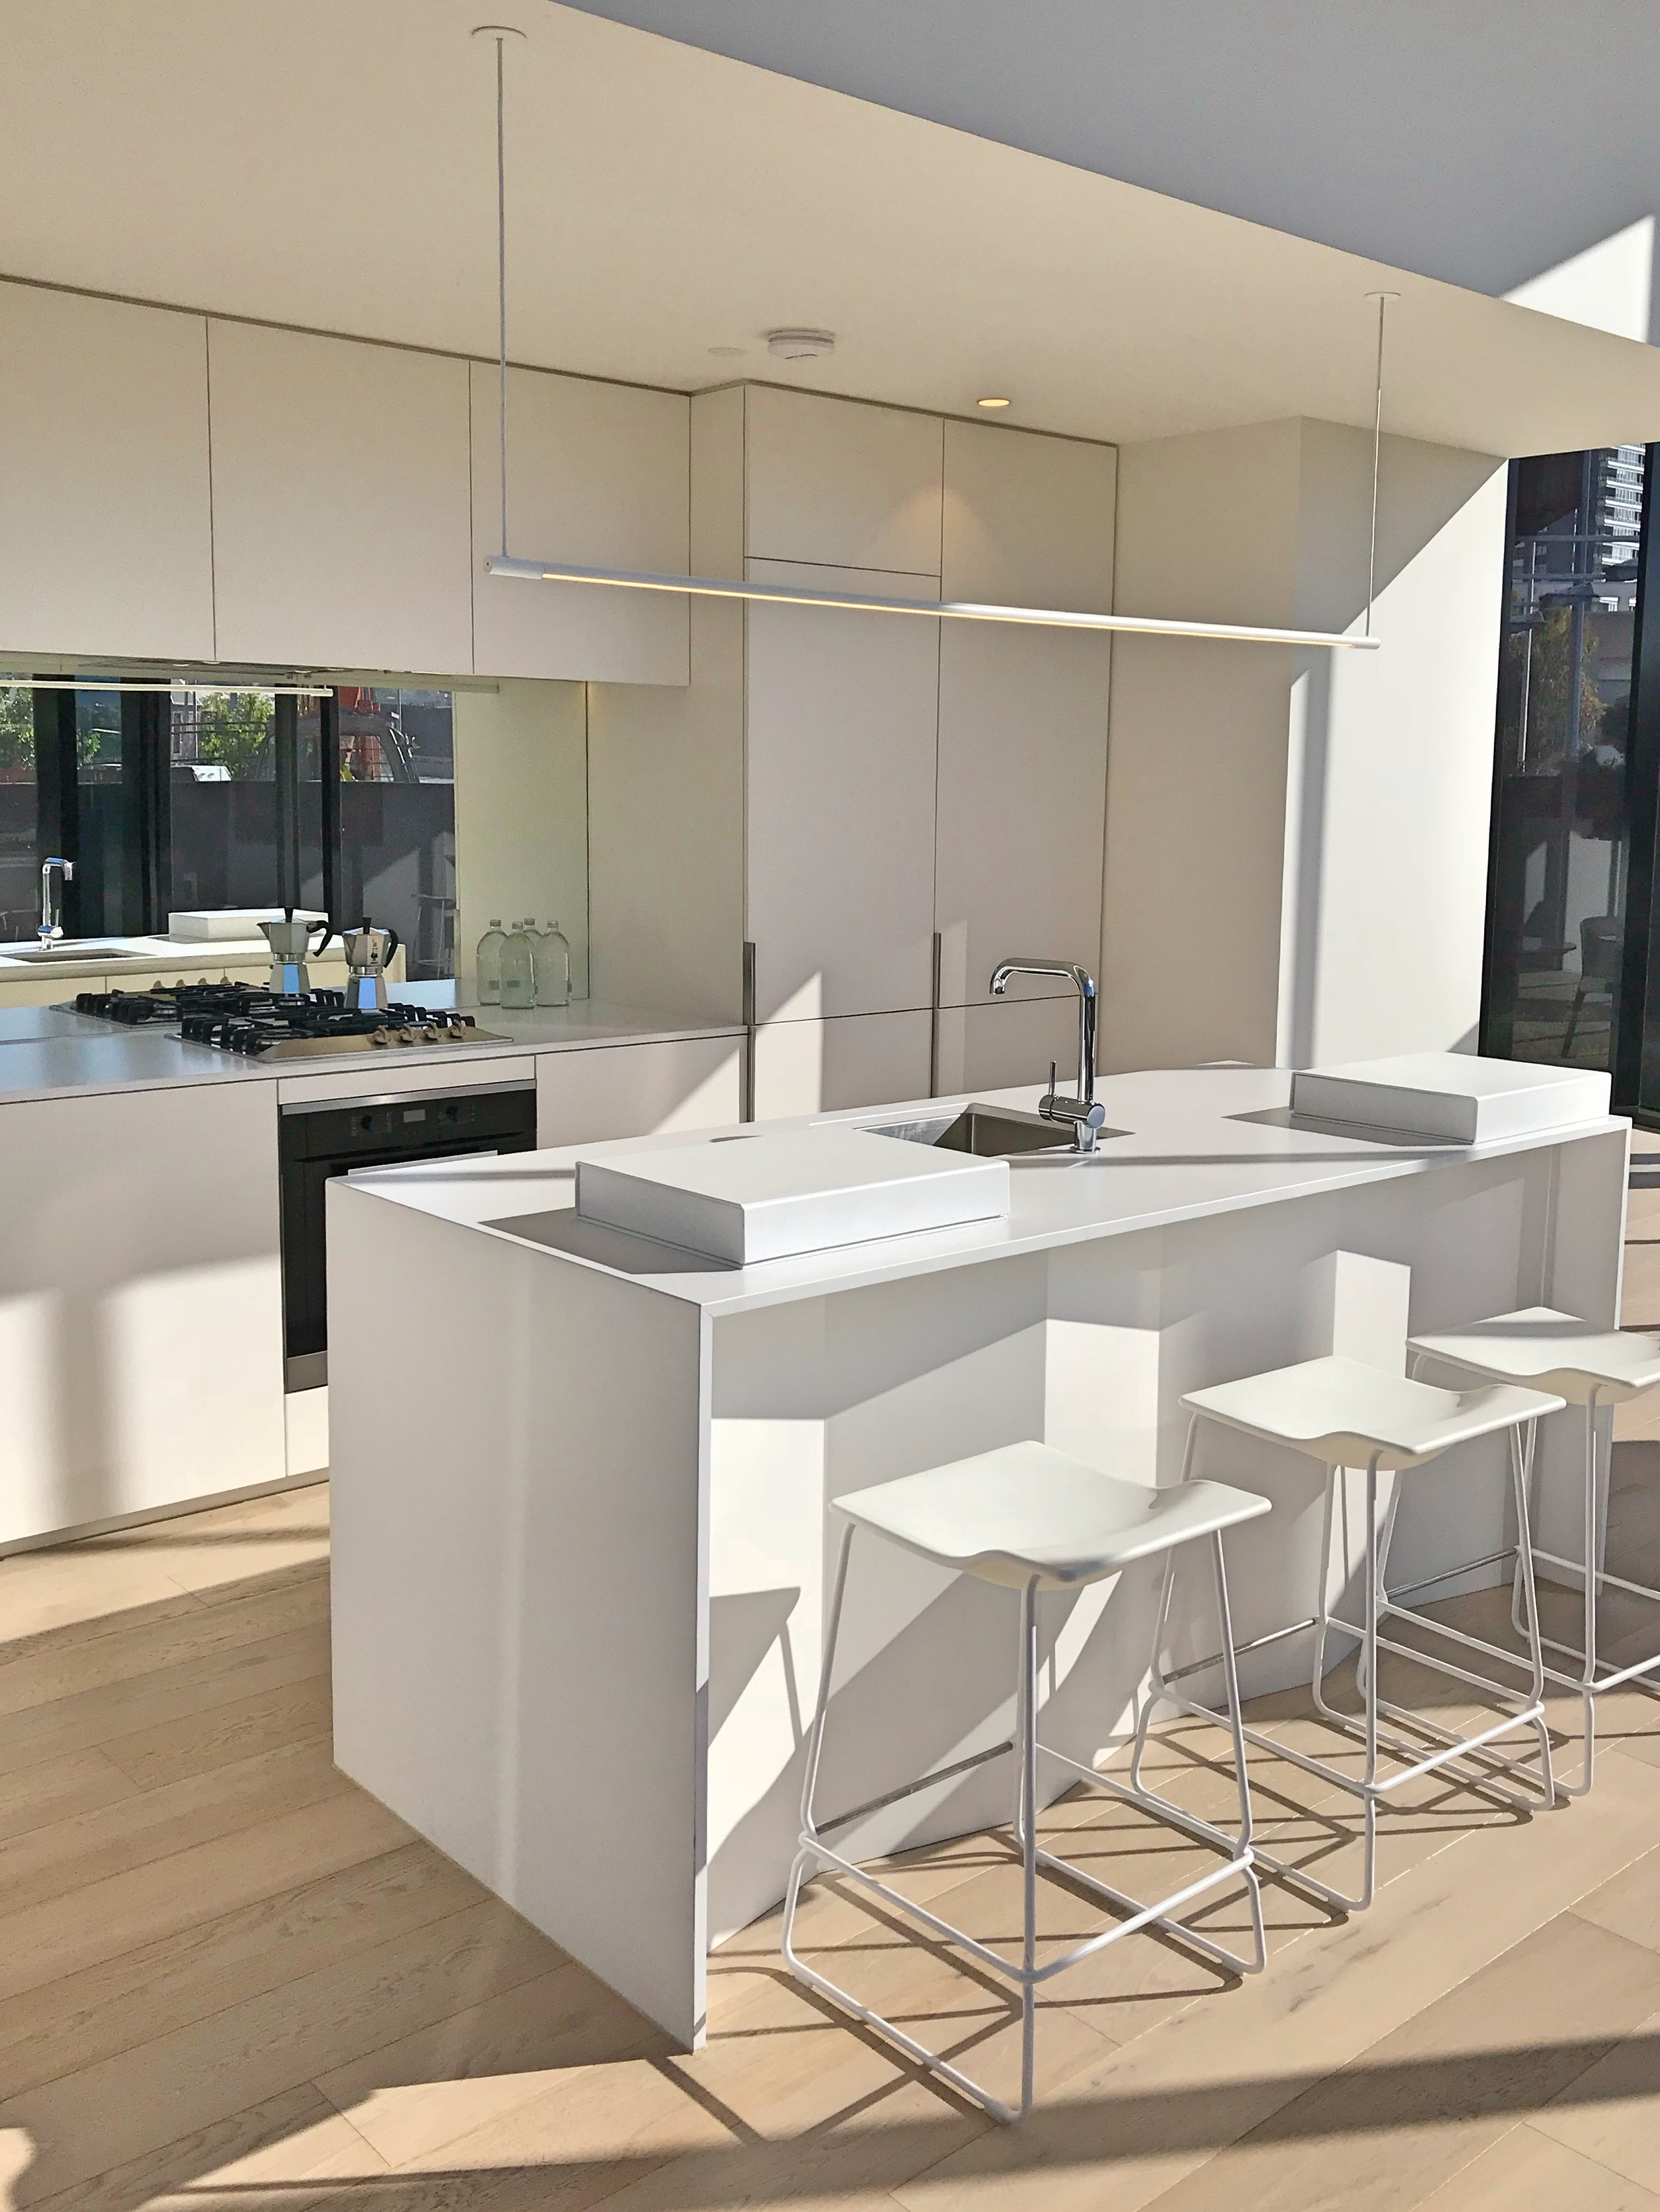 The beautiful all-white kitchen in the Melbourne Square display suite gleams in the morning sun.